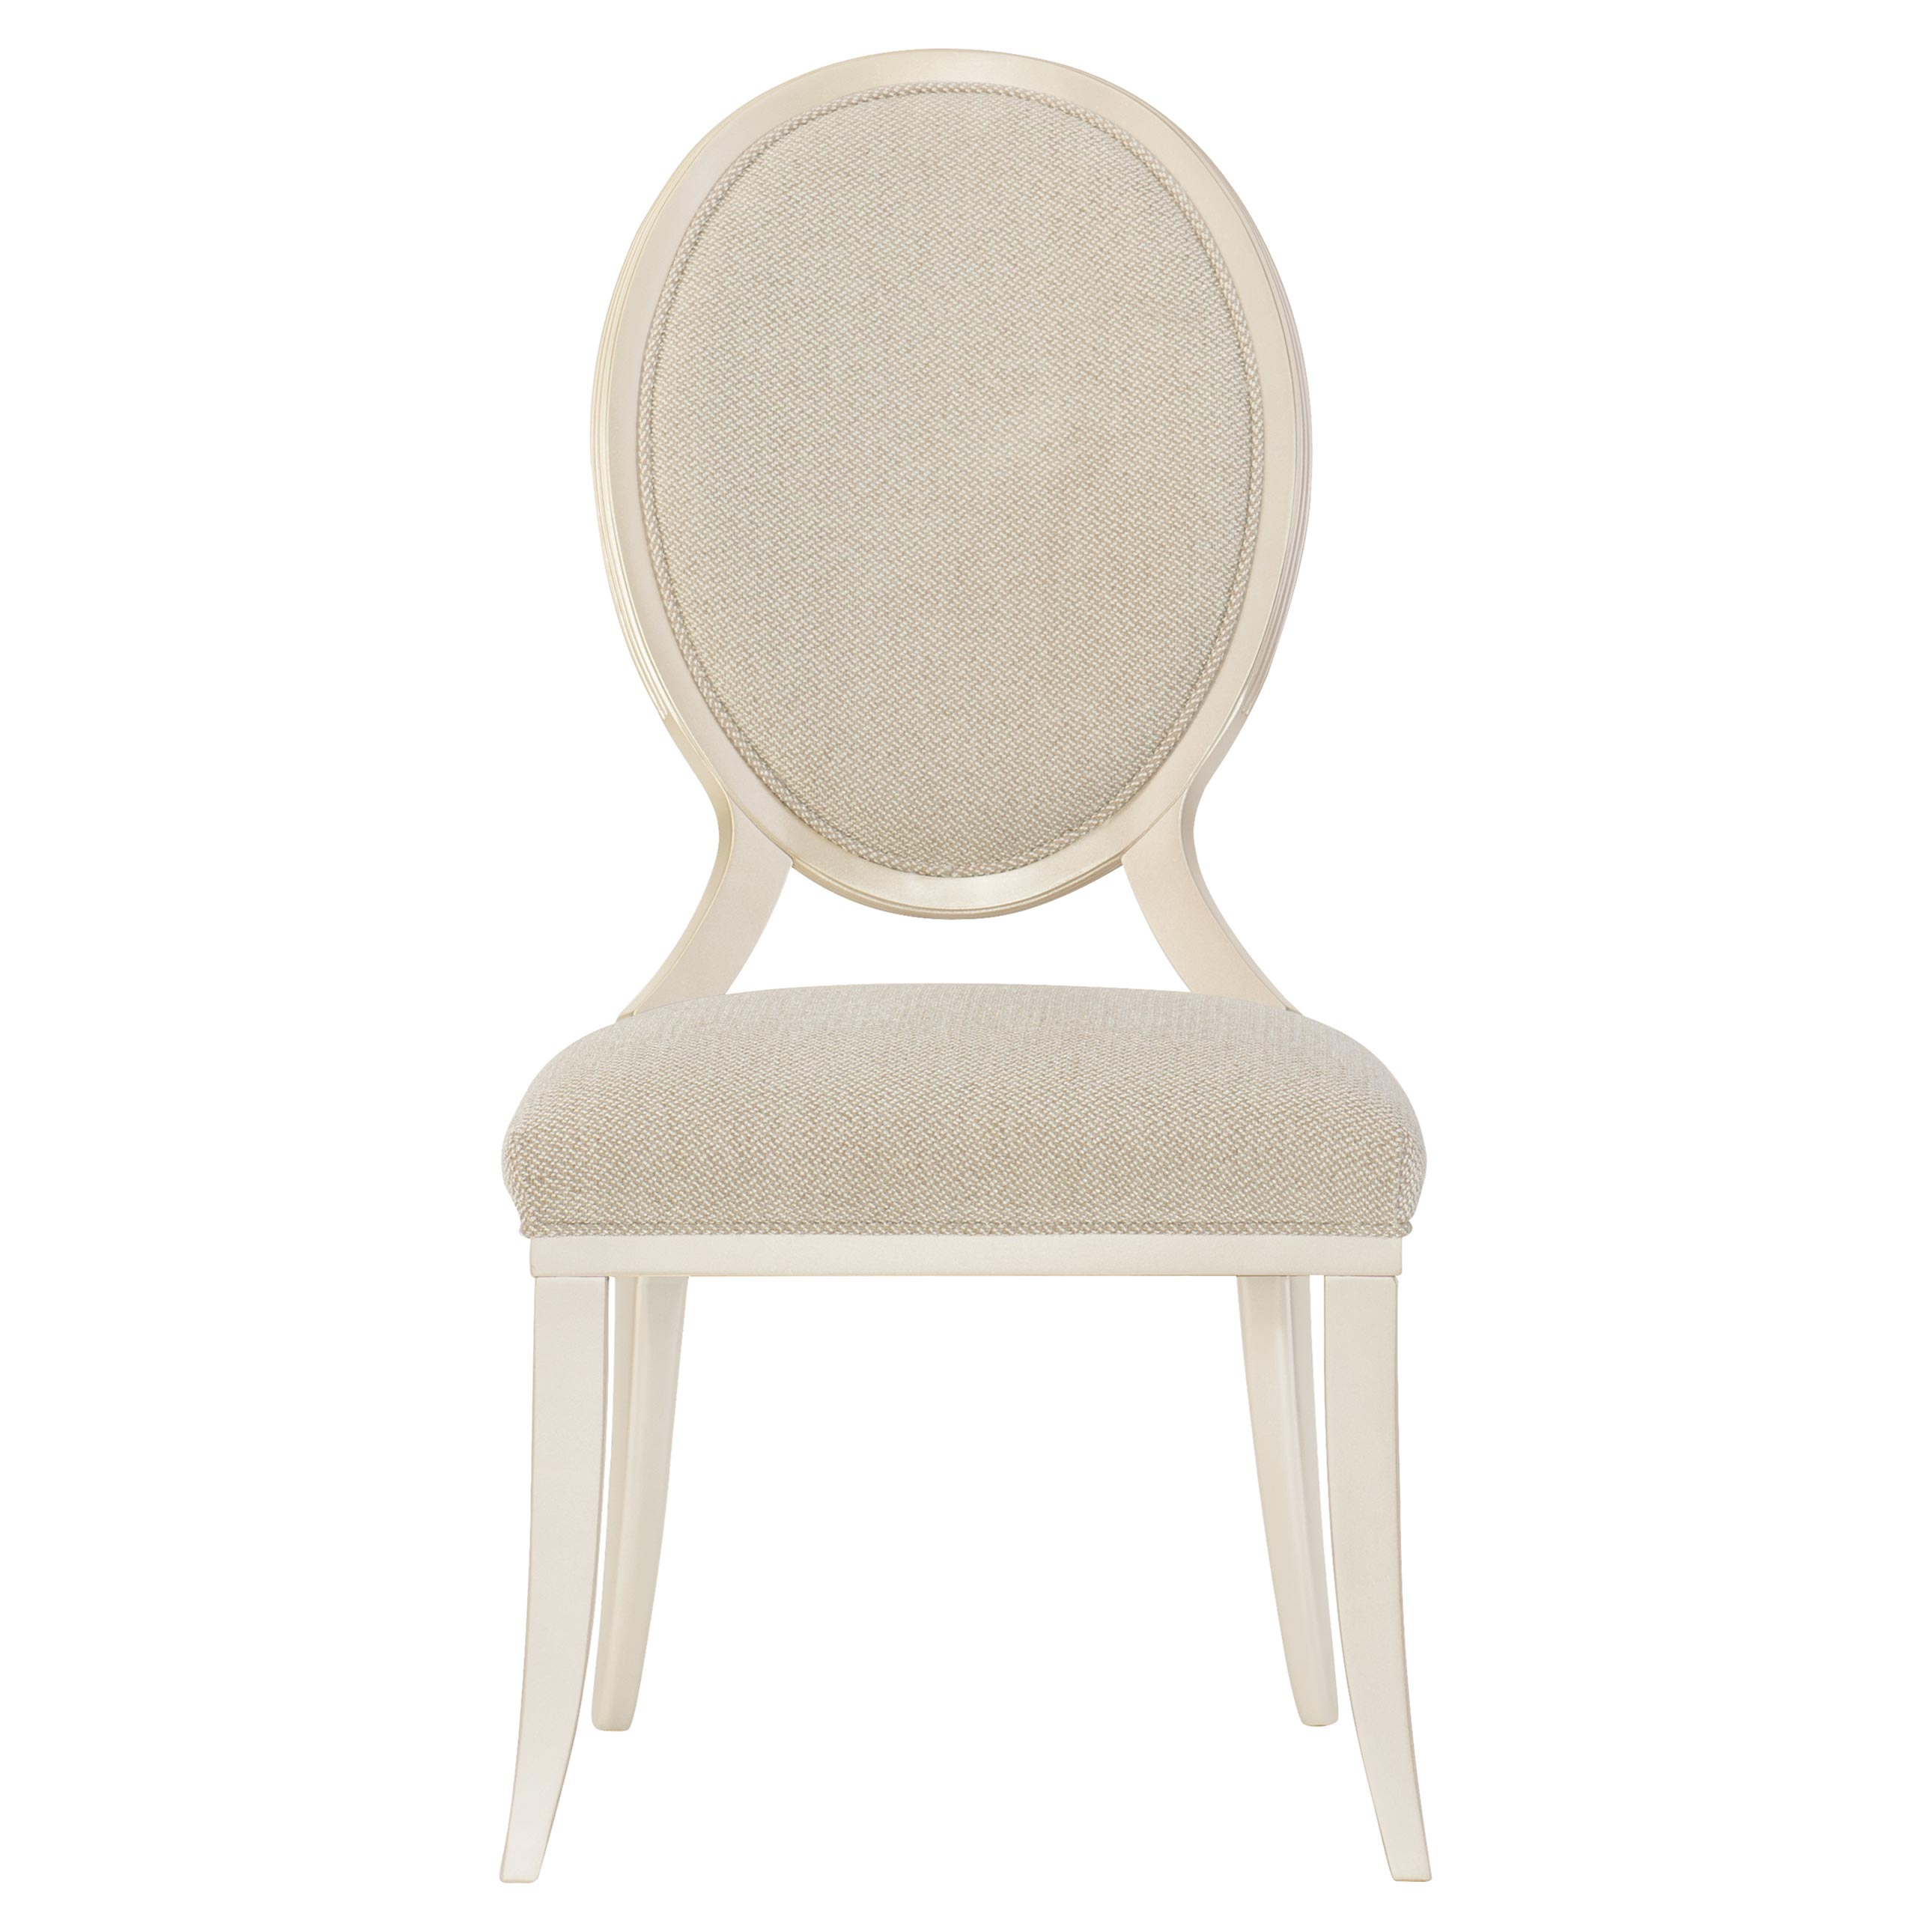 Marie French Country Beige Upholstered Oval Back Dining Side Chair - Set of 2